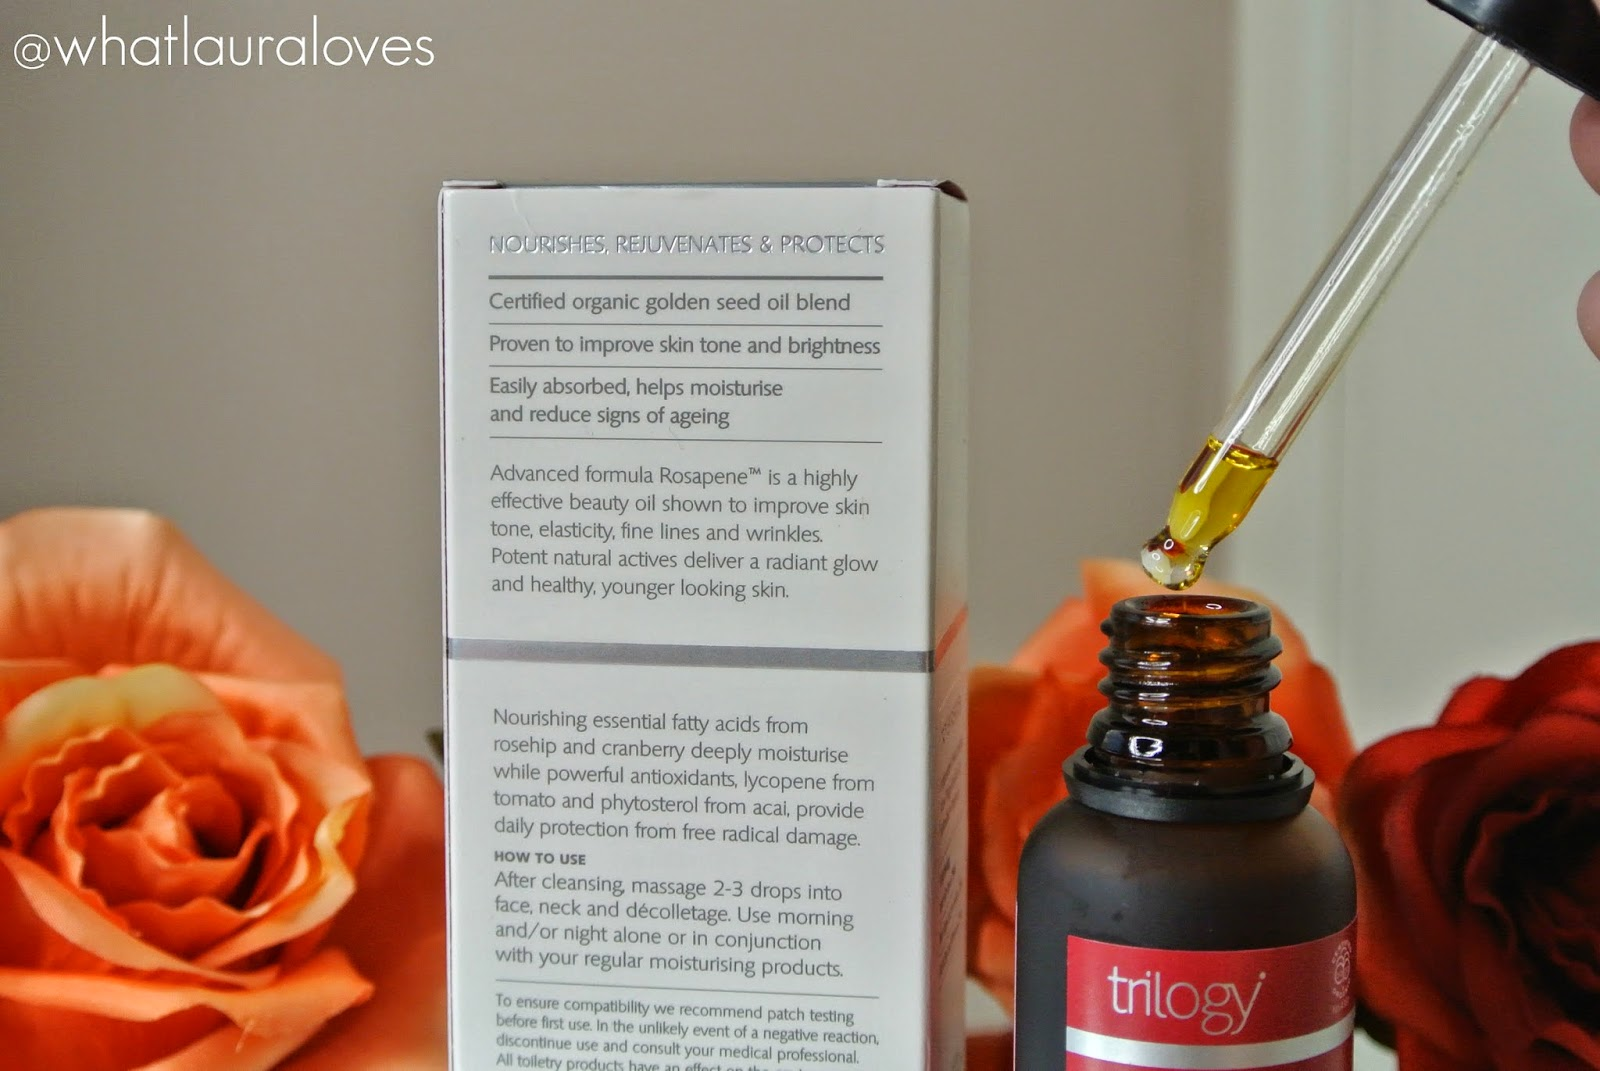 Trilogy Rosehip Oil Antioxidant Review What Laura Loves